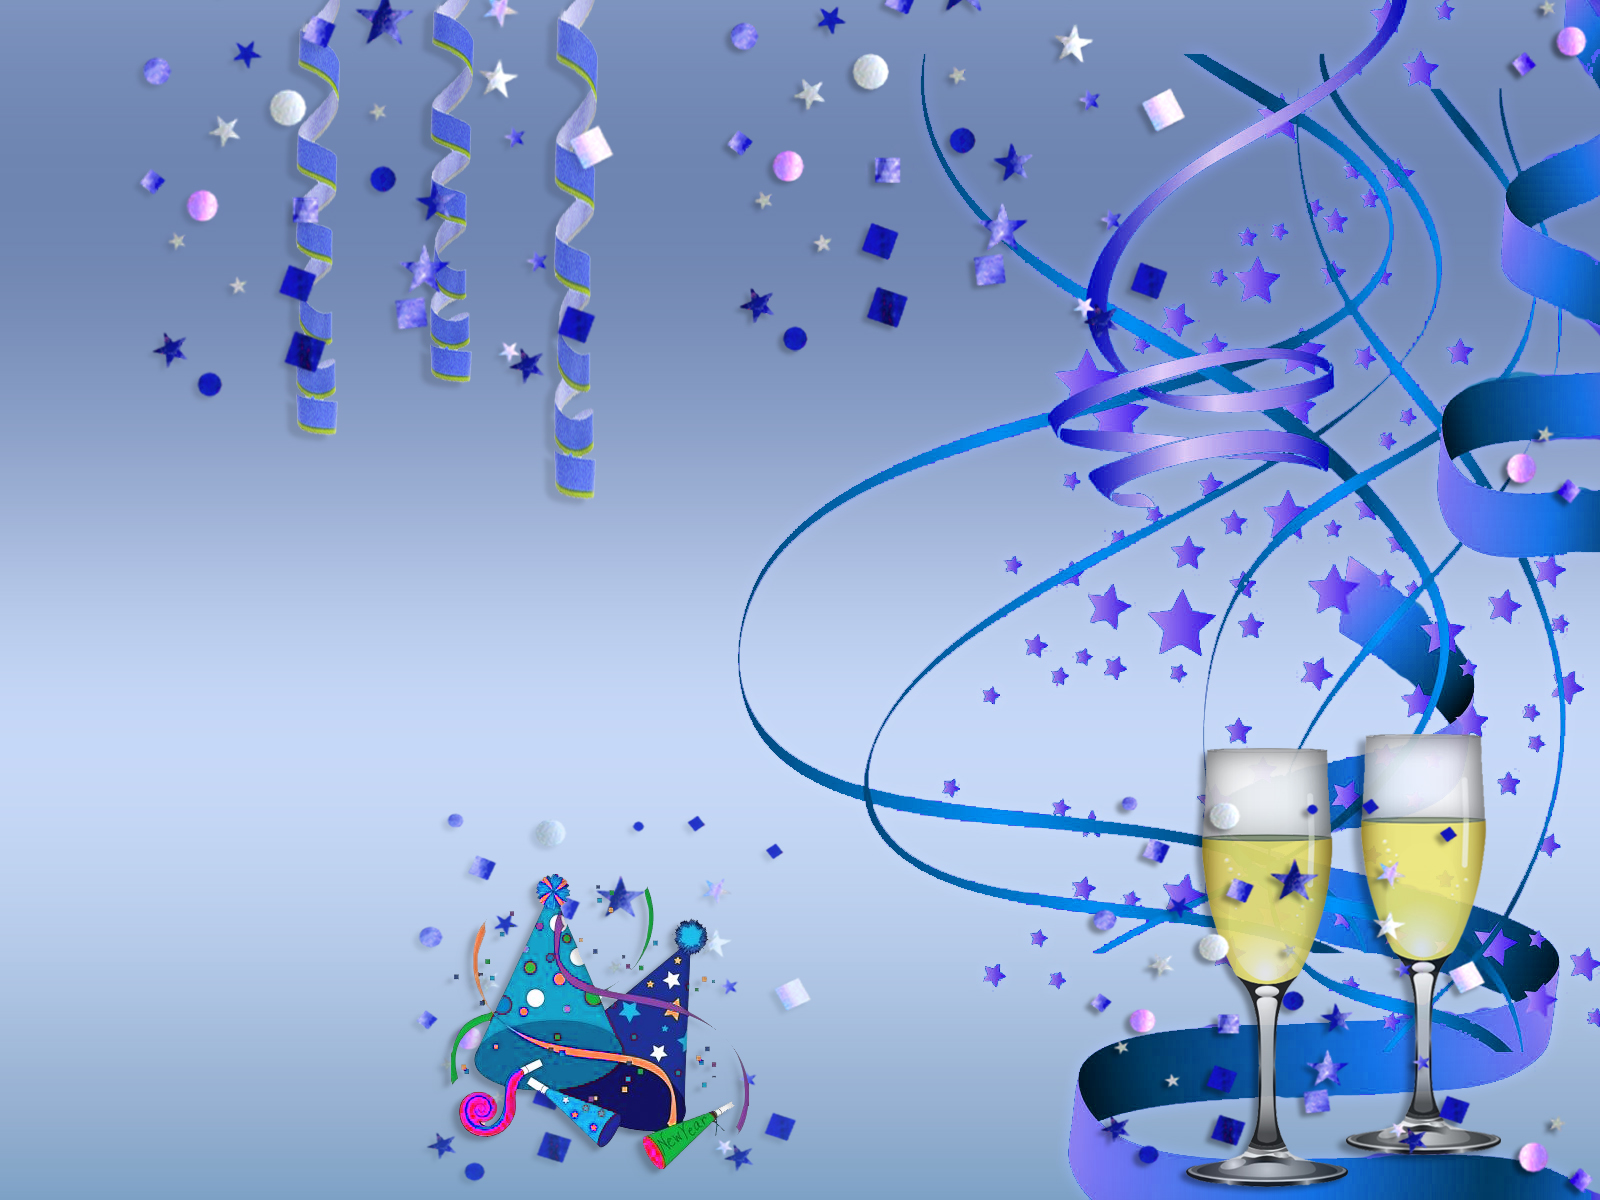 free download happy new year wallpapers desktop backgrounds desktop background 1600x1200 for your desktop mobile tablet explore 71 new years desktop wallpaper free wallpaper backgrounds new desktop wallpaper everyday wallpapersafari